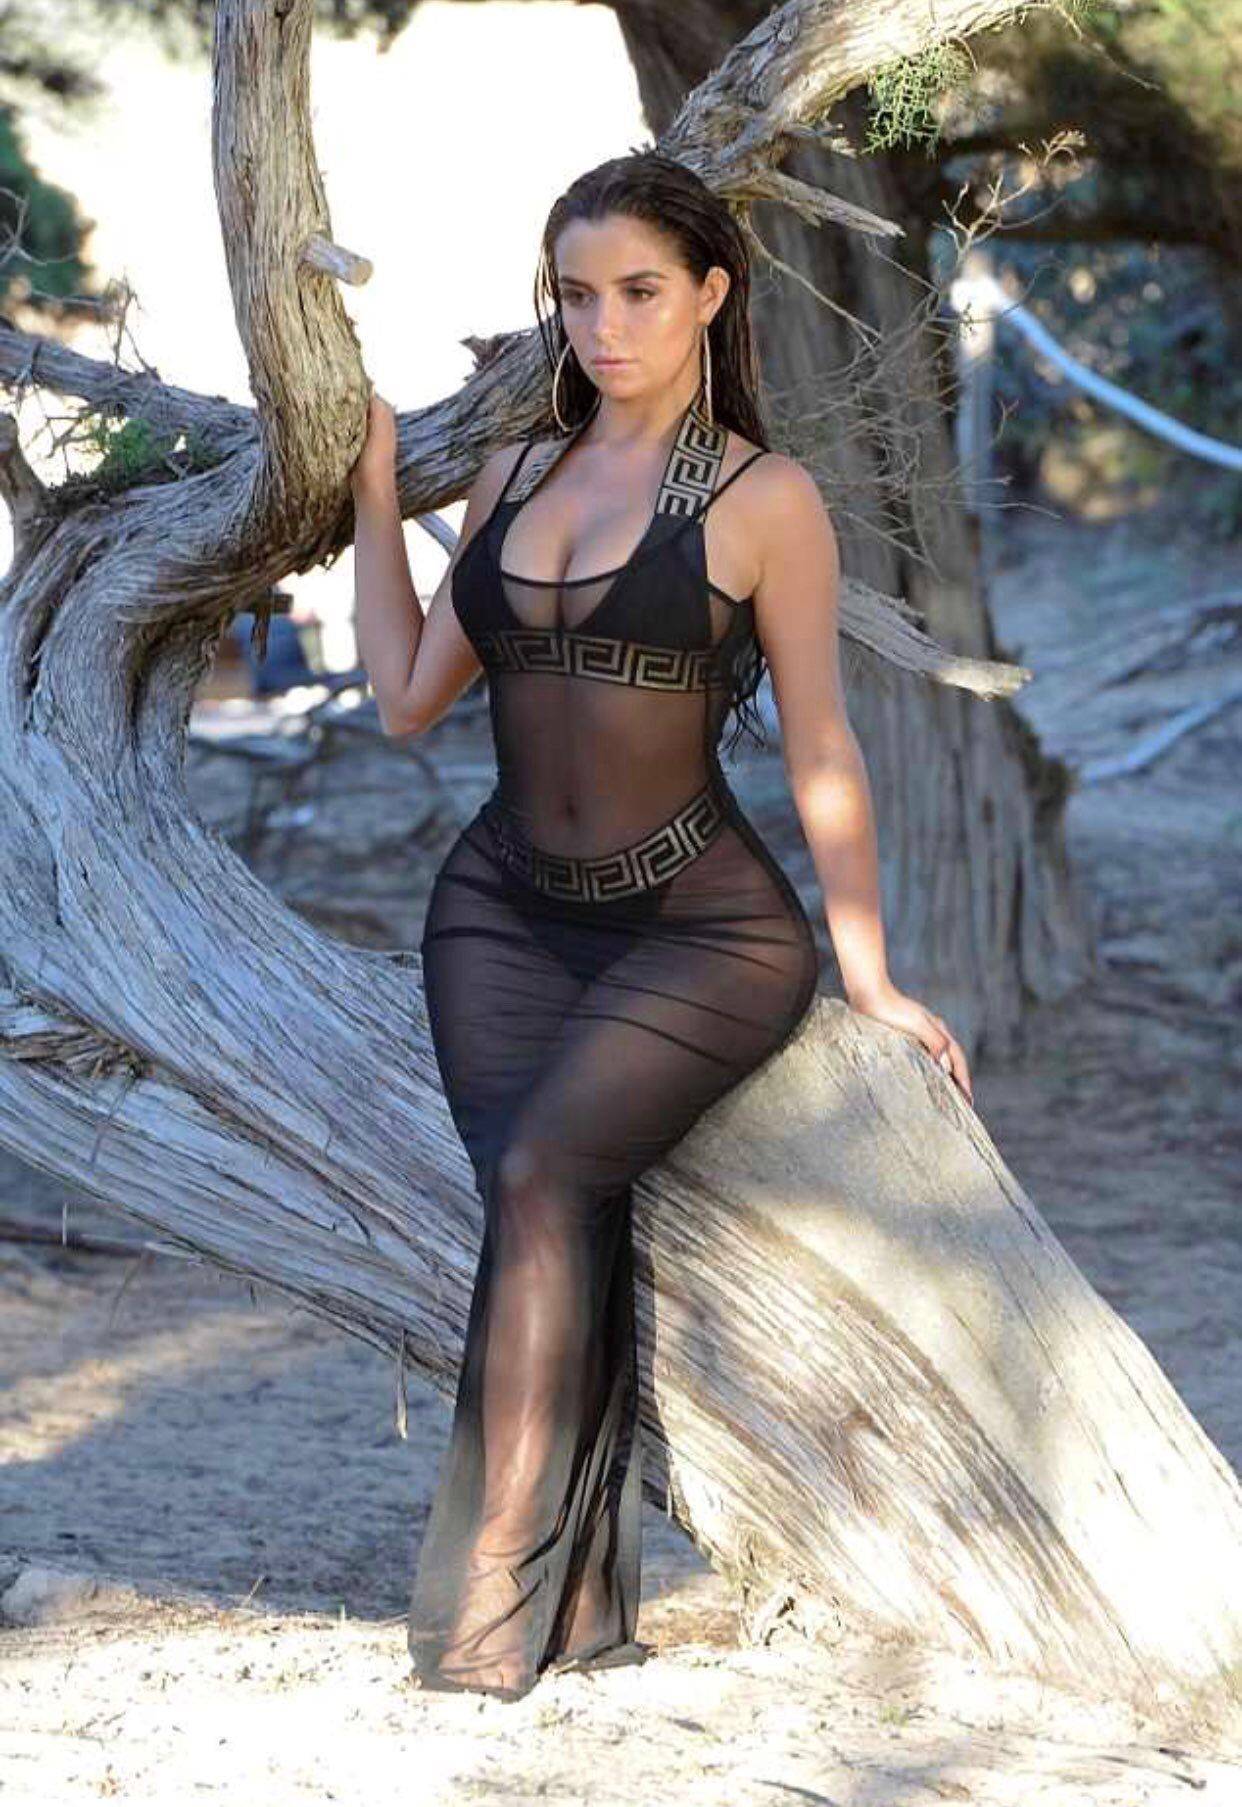 b2ea5c42c270c #see_through hot amazing transparent black dress show a sexy curvy lady  #omwahh